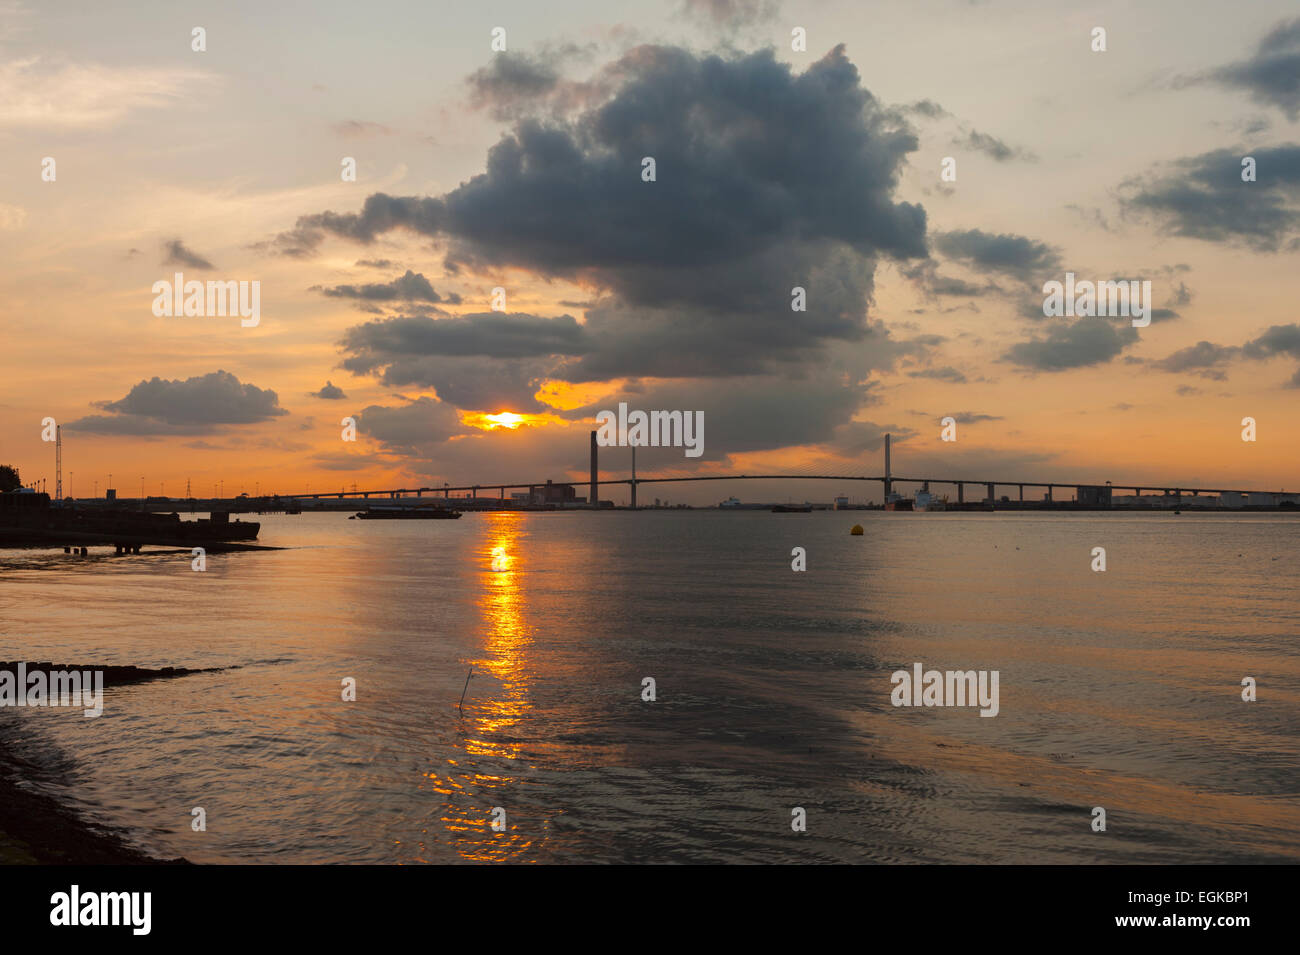 The Dartford bridge at sunset from Greenhithe. - Stock Image